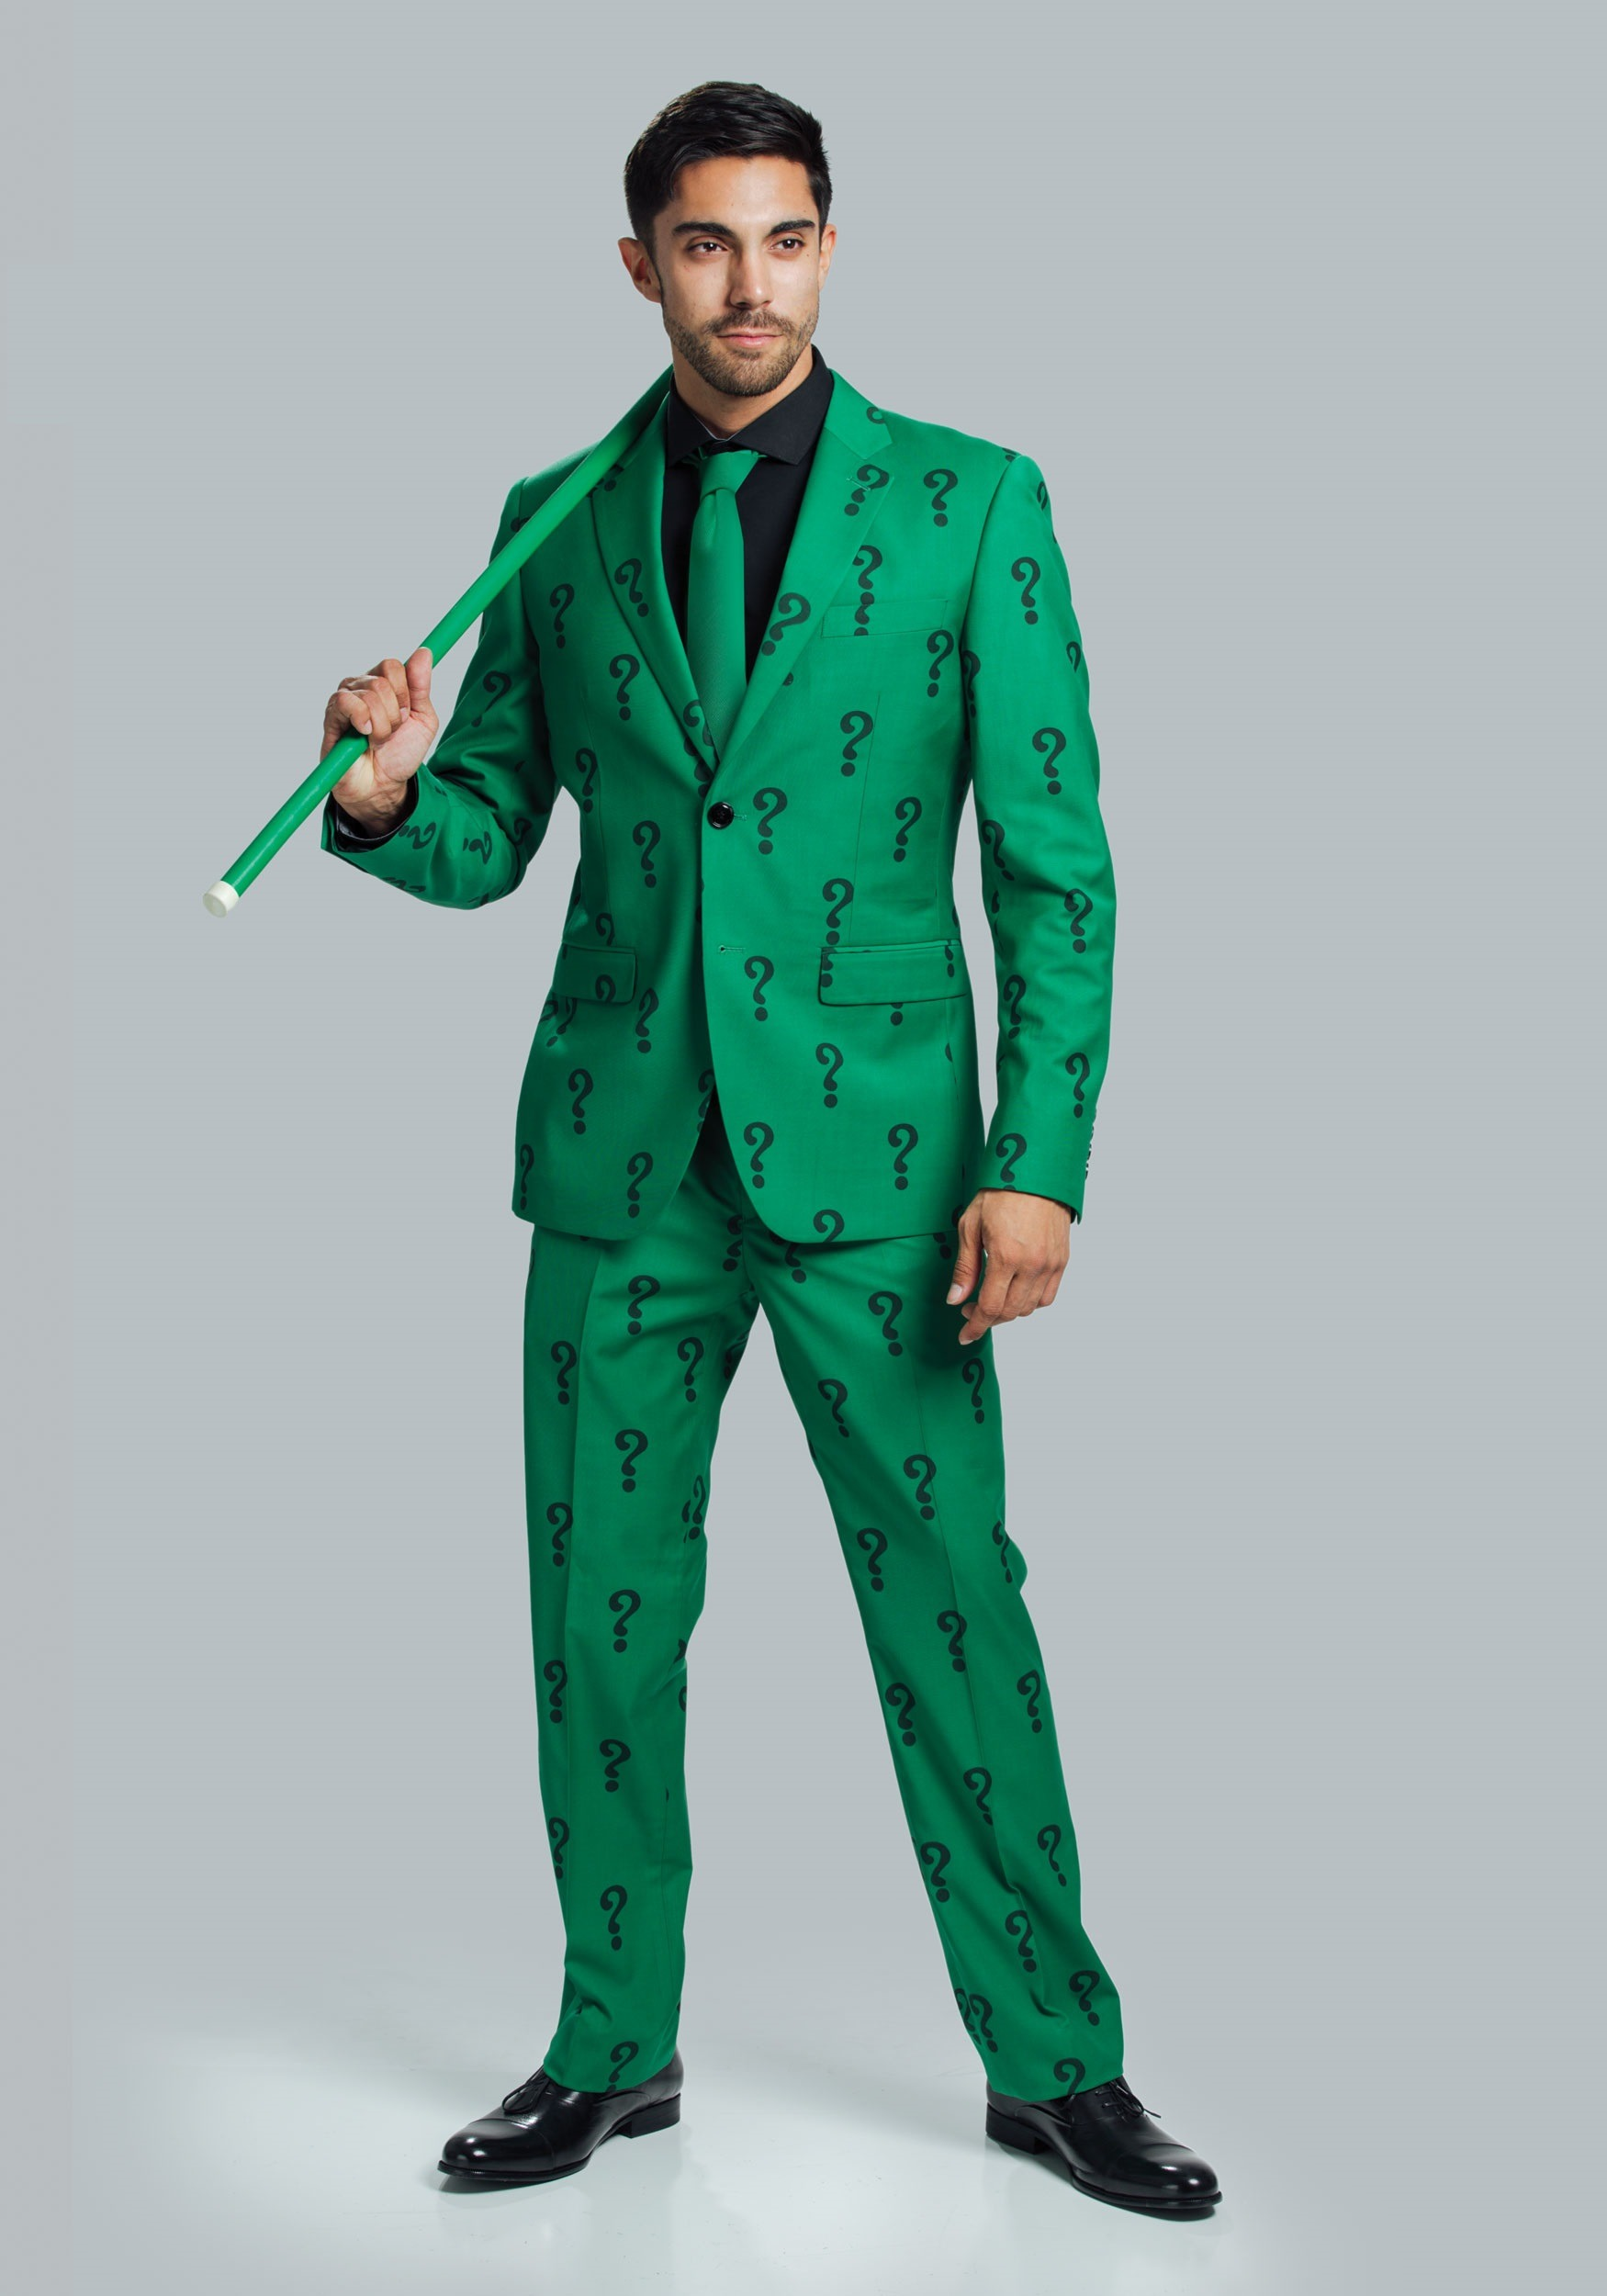 Authentic The Riddler Suit